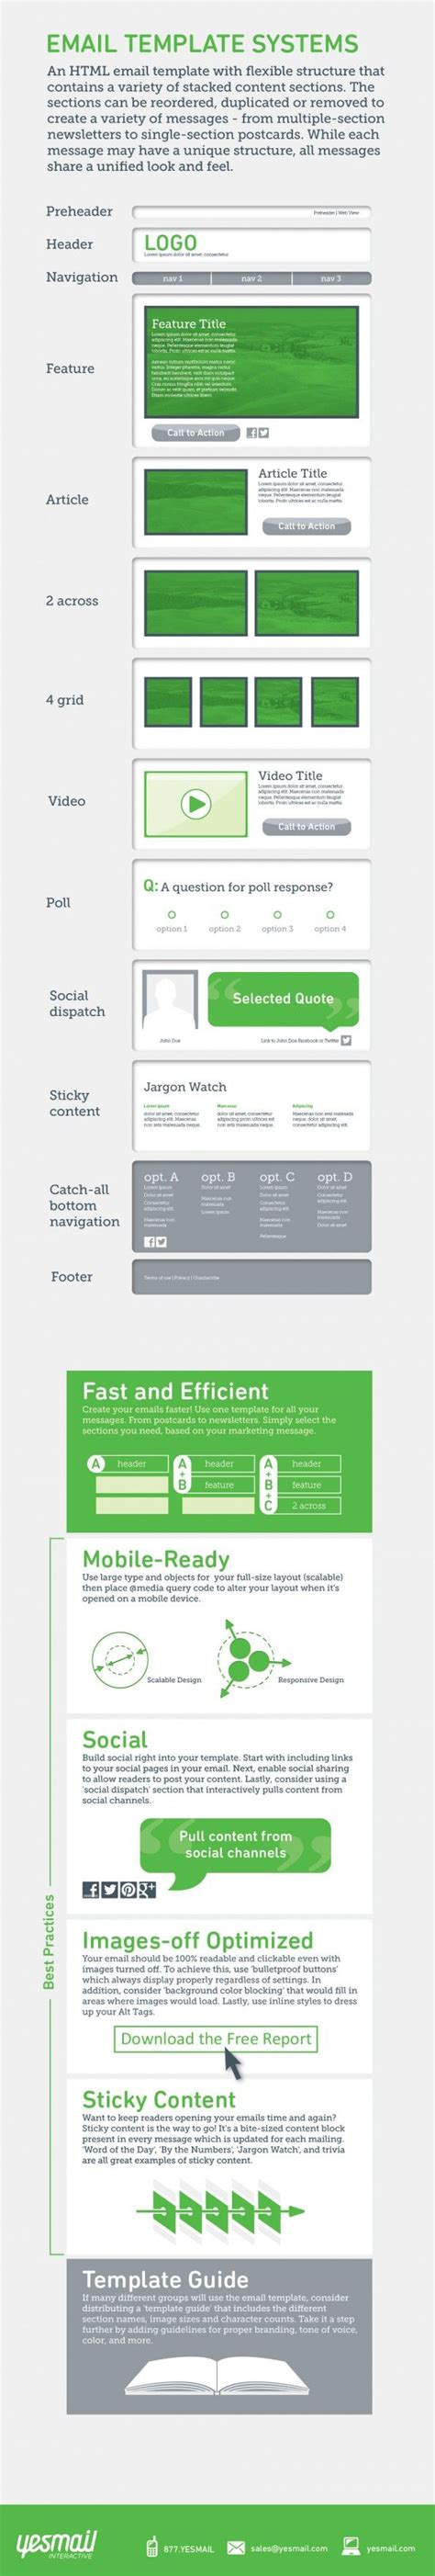 best email layout design 17 best ideas about email templates on pinterest email